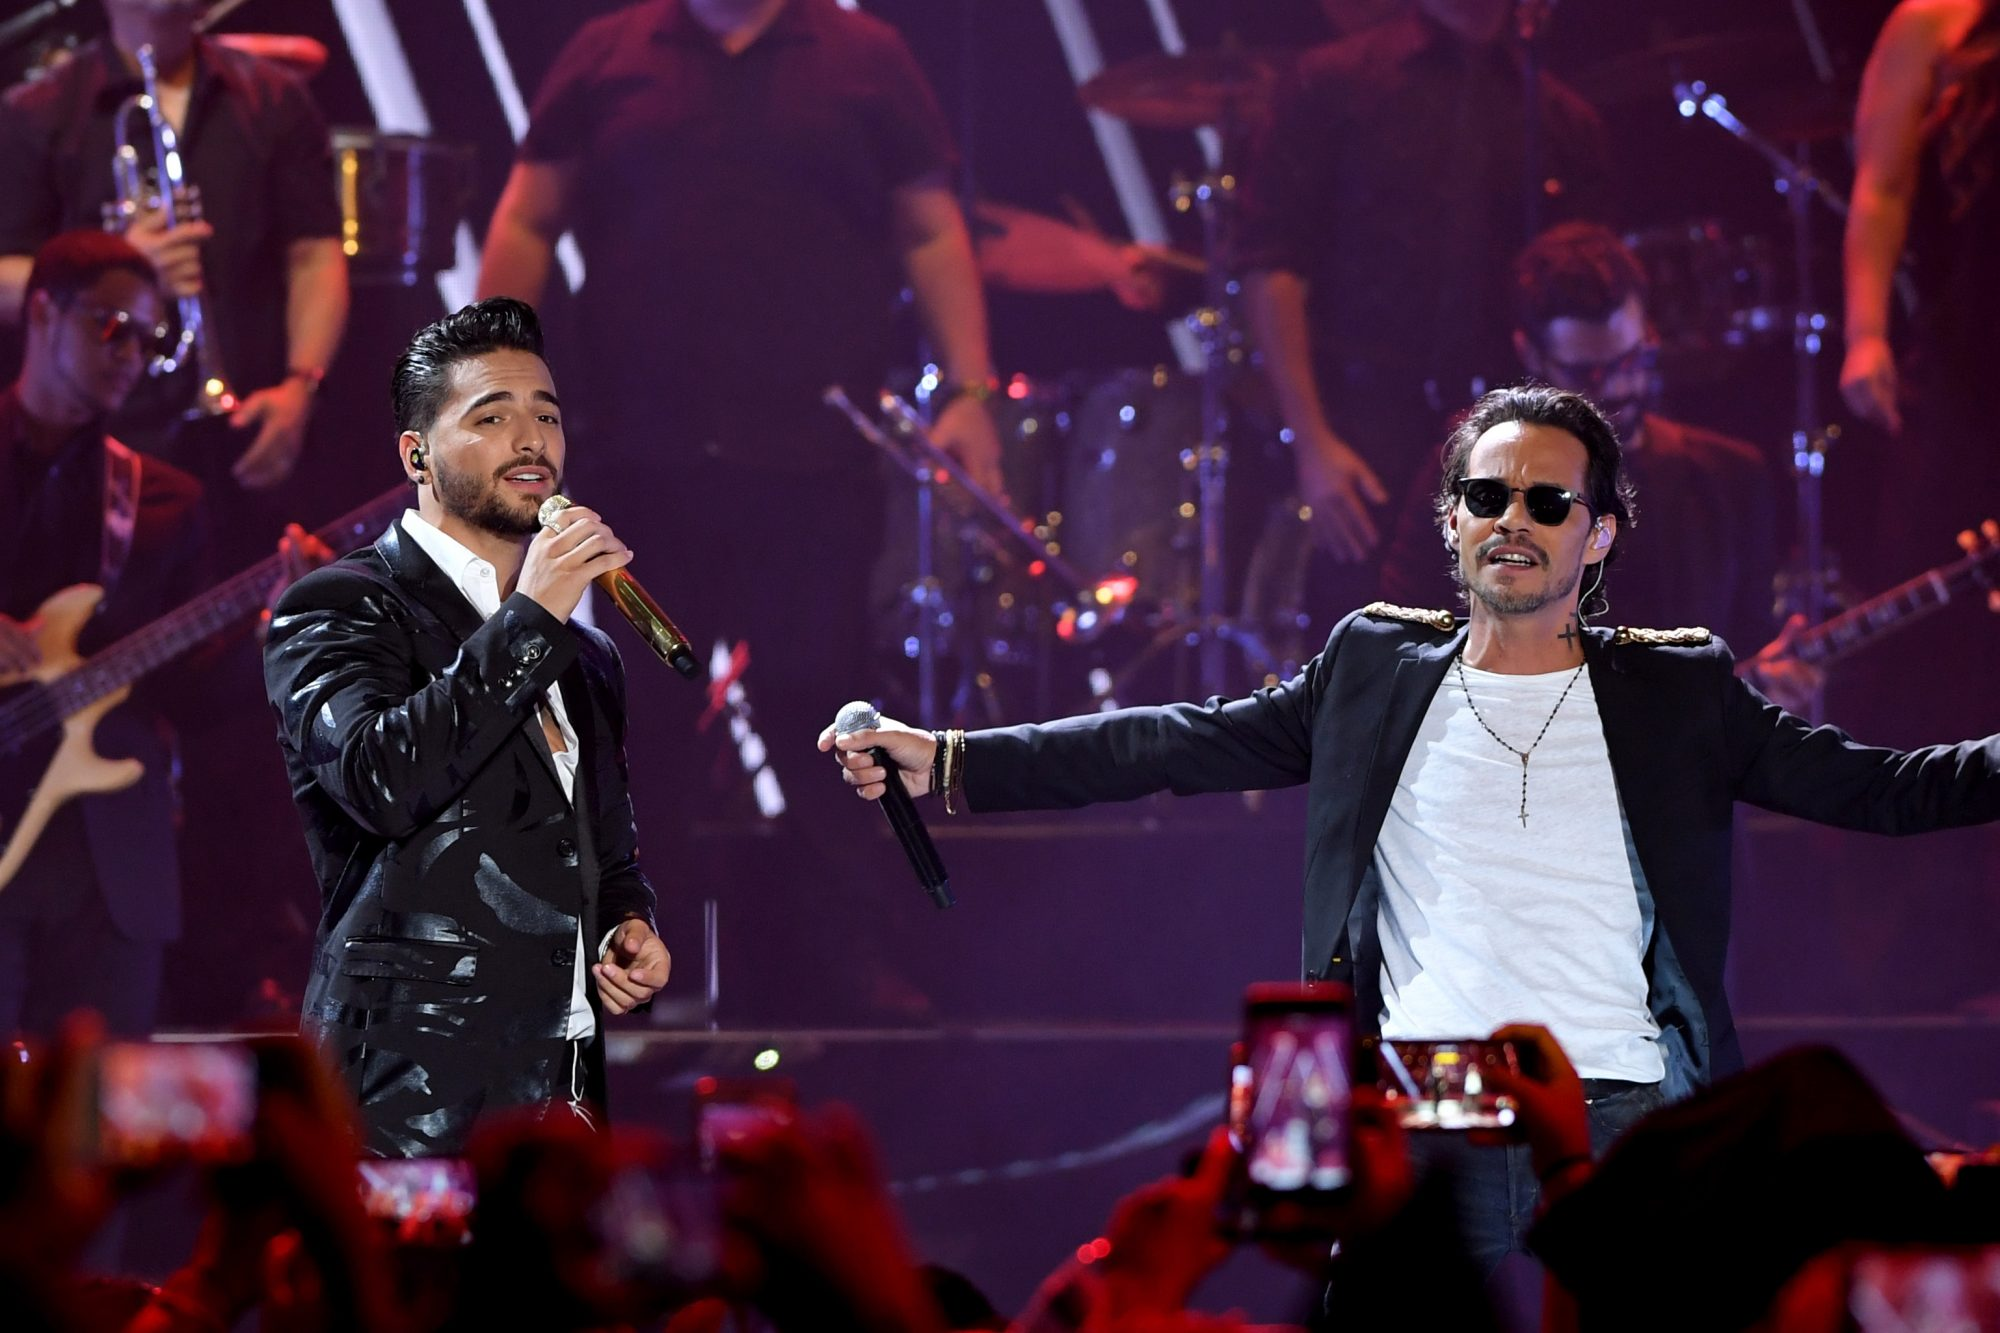 """Univision's """"Premios Juventud"""" 2017 Celebrates The Hottest Musical Artists And Young Latinos Change-Makers - Show"""